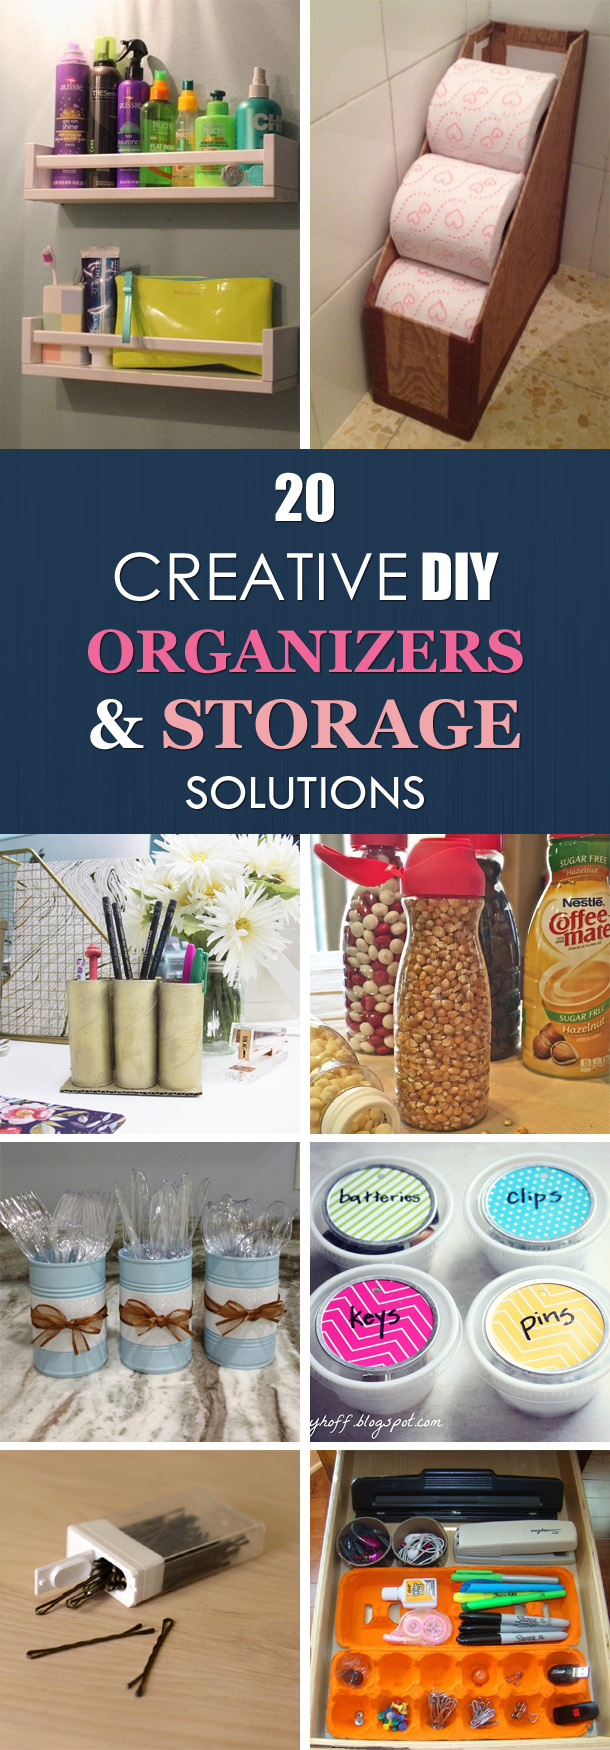 20 Creative DIY Organizers and Storage Solutions